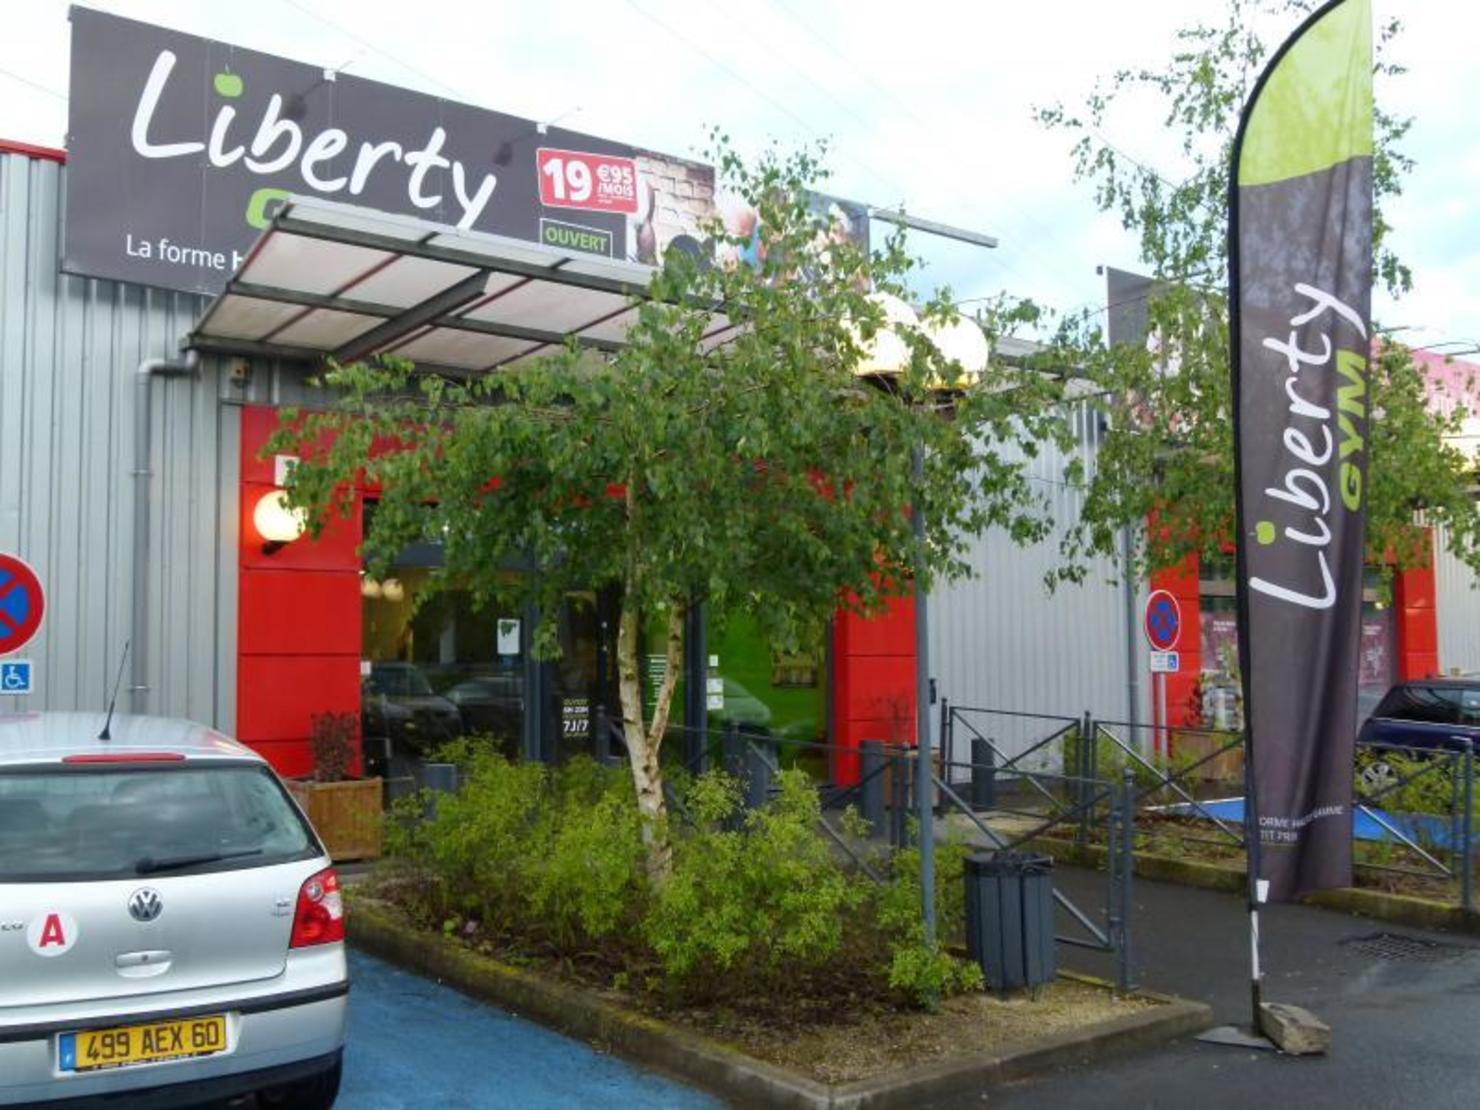 Liberty GYM Nogent Sur Oise-0